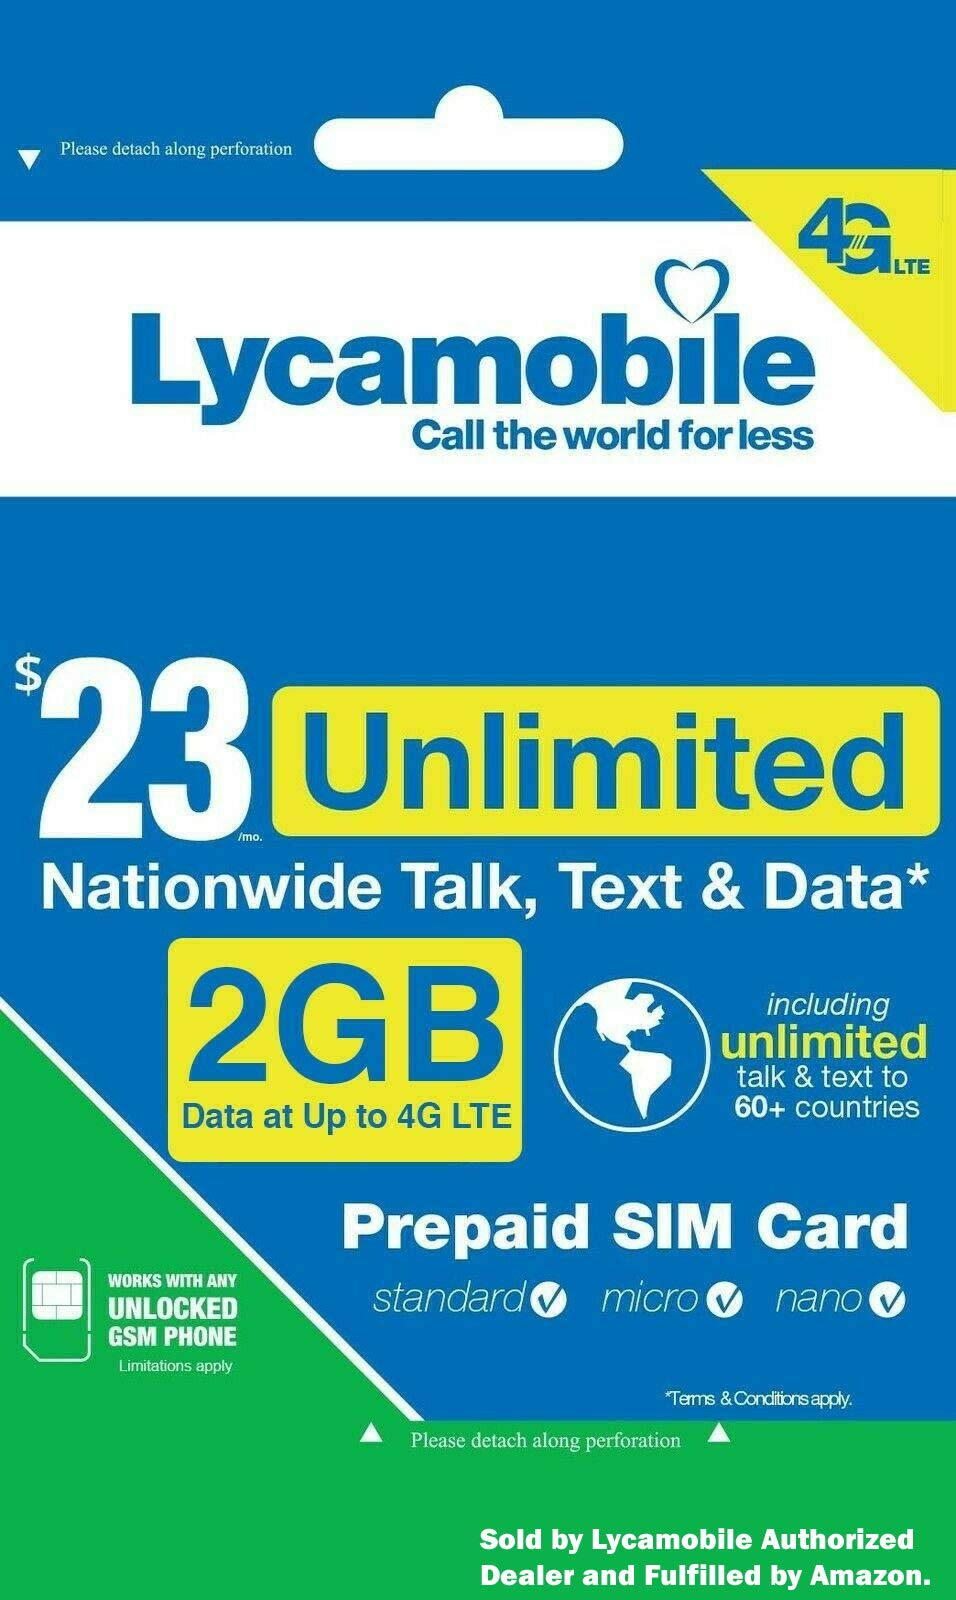 1ST MONTH FREE LYCA MOBILE Preloaded SIM with $23 Plan With International Call by lycamobile